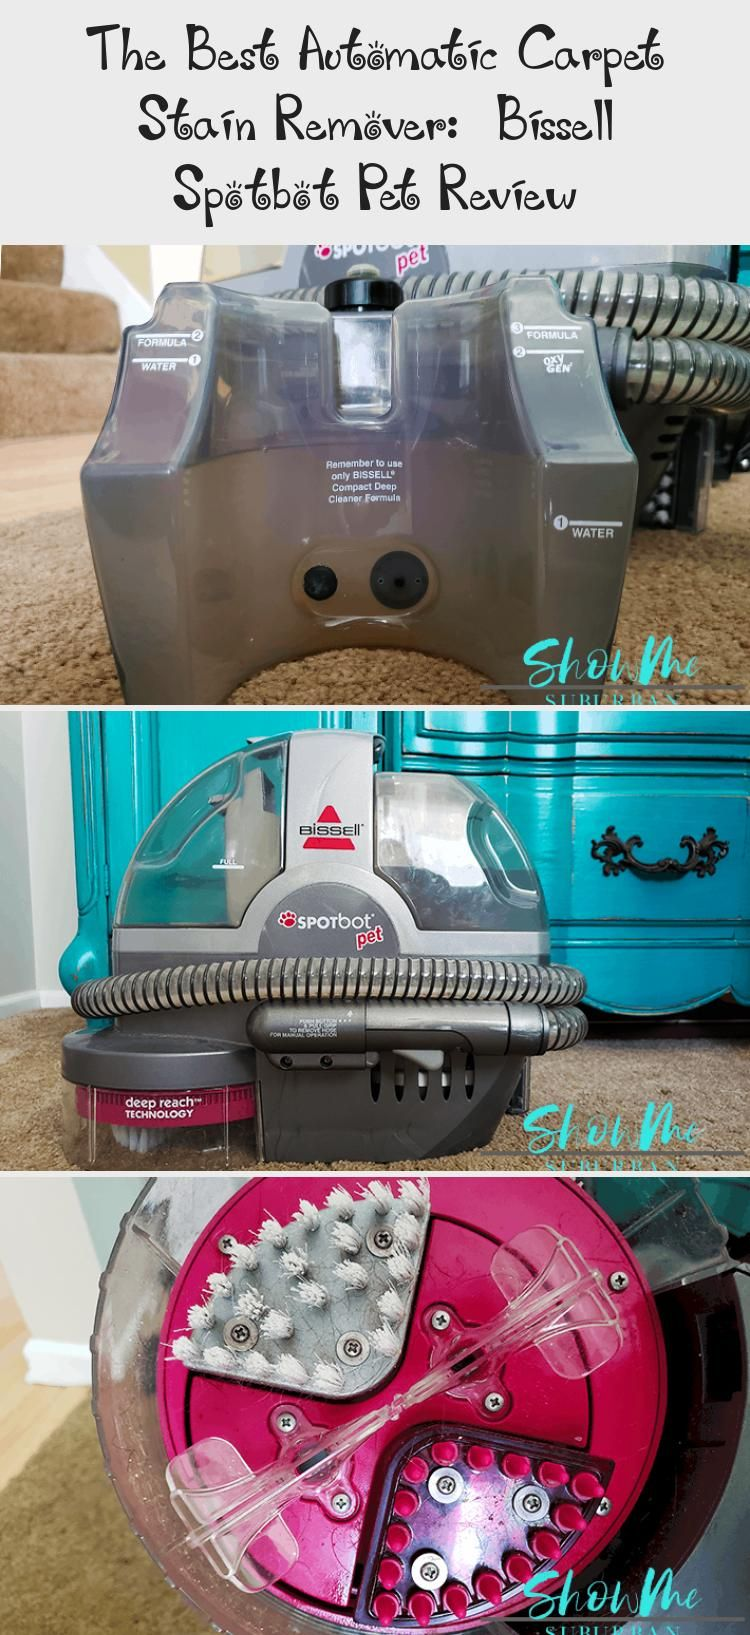 This Article On The Bissell Spotbot Pet Carpet Cleaner Told Me Everything I Need To Know A Helpful In In 2020 Stain Remover Carpet Pet Carpet Cleaners Carpet Stains